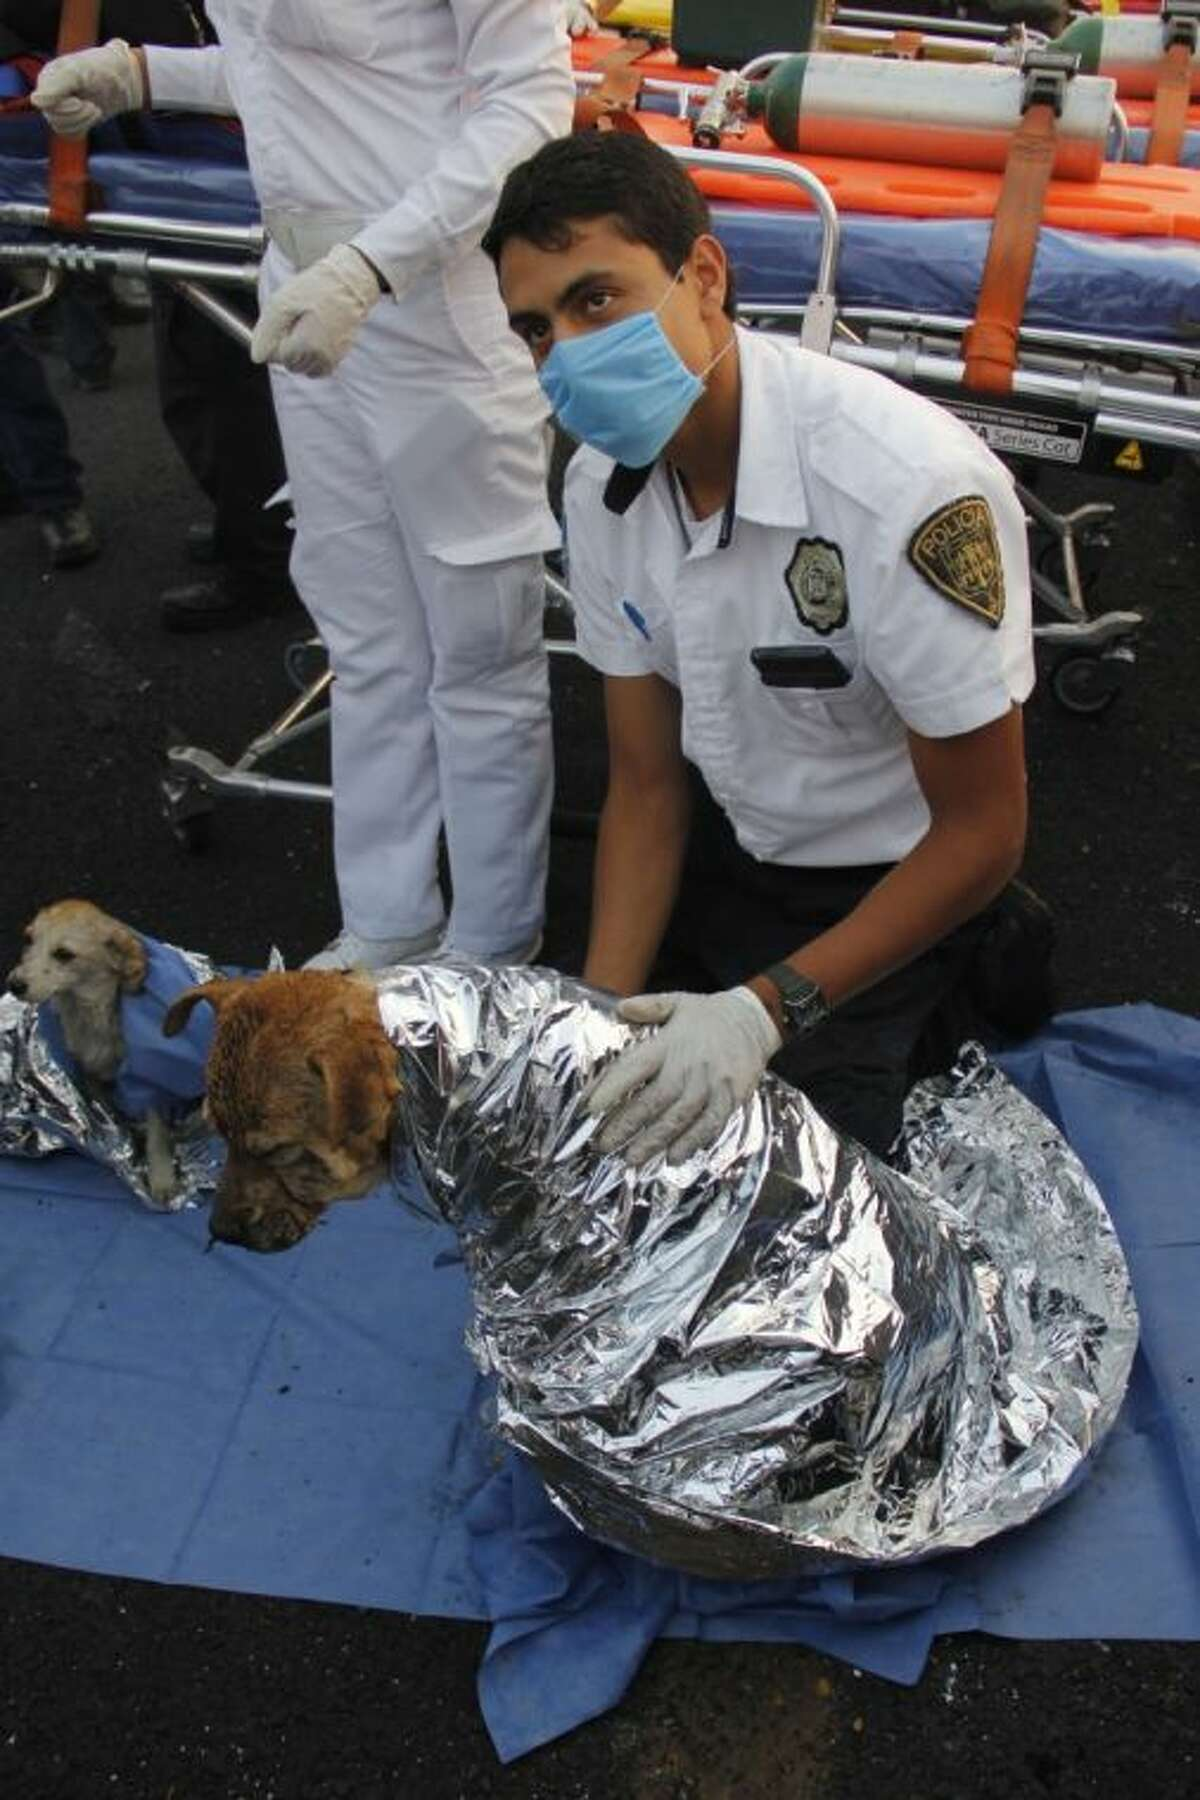 A paramedic treats two injured dogs after a gas tanker truck exploded on a nearby highway in the Mexico City suburb of Ecatepec early Tuesday.